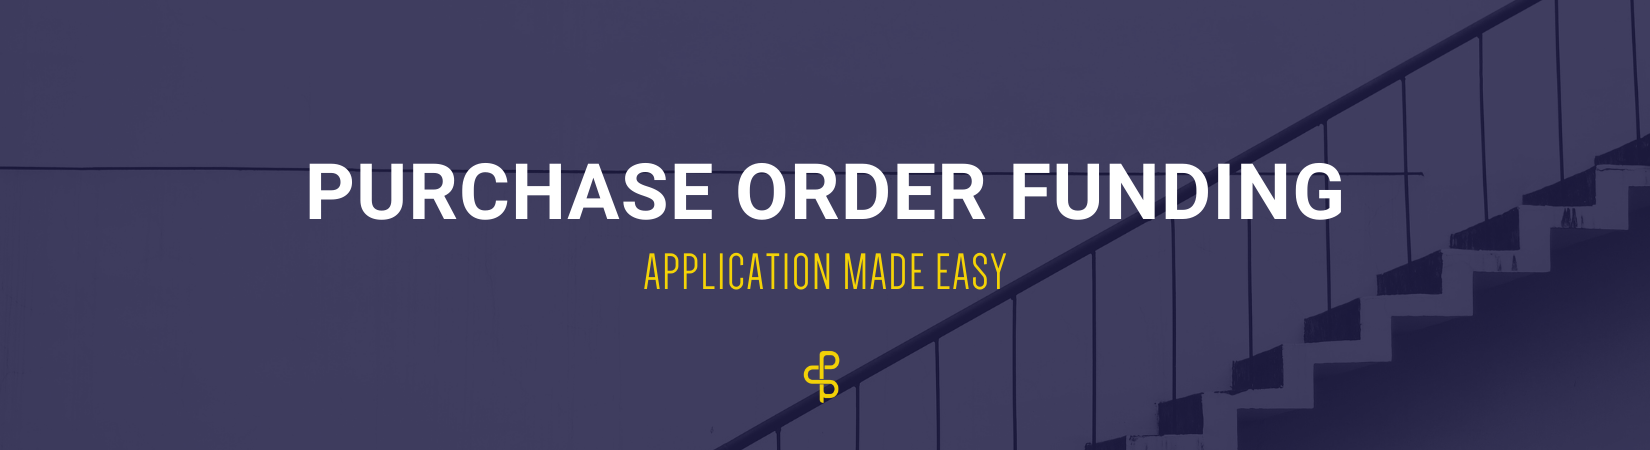 Purchase Order Funding Made Easy